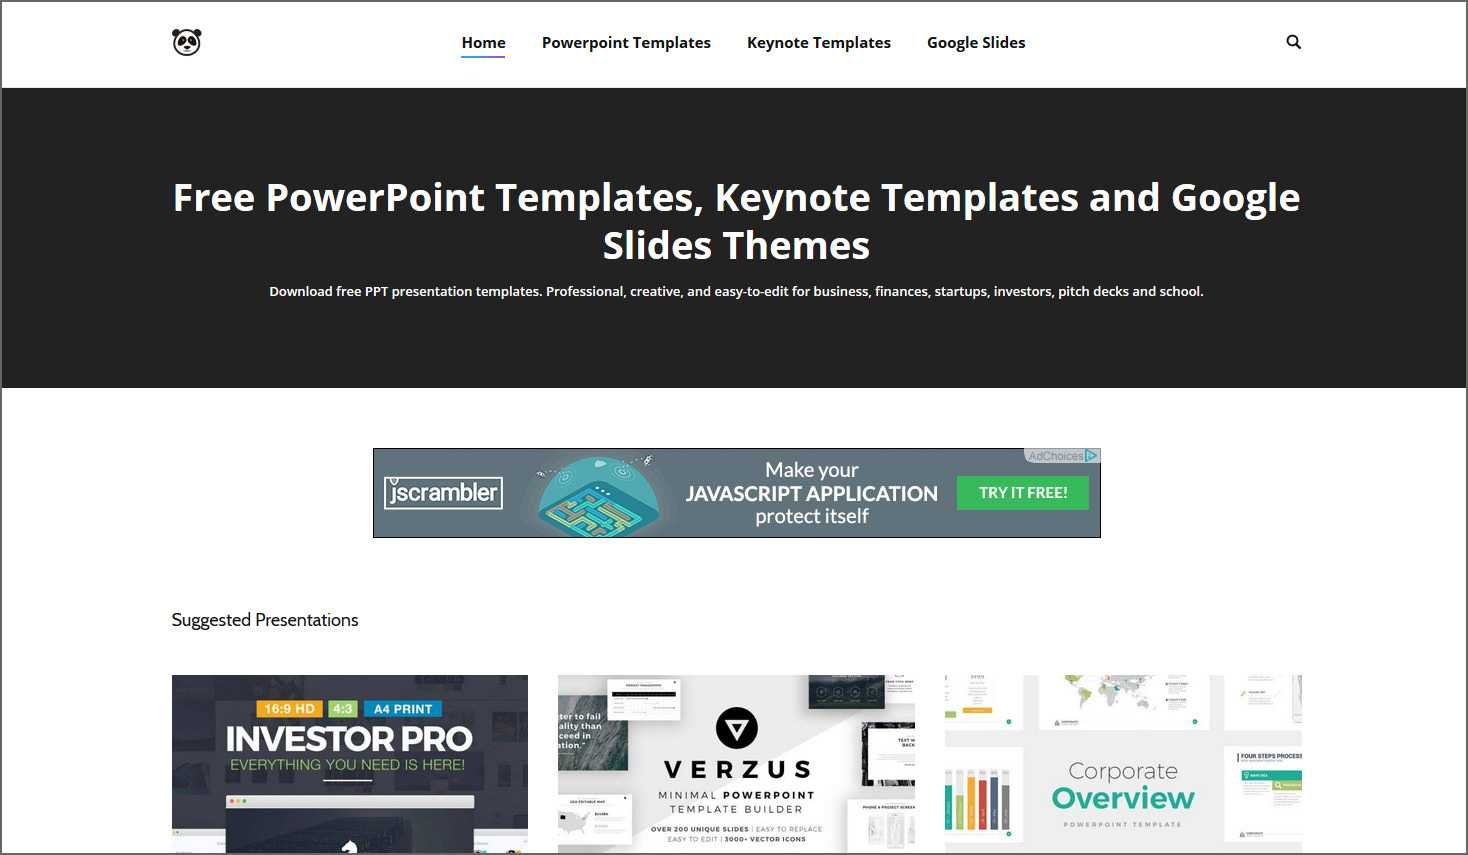 4 Sites With Free Beautiful Powerpoint Templates, Keynotes throughout Virus Powerpoint Template Free Download